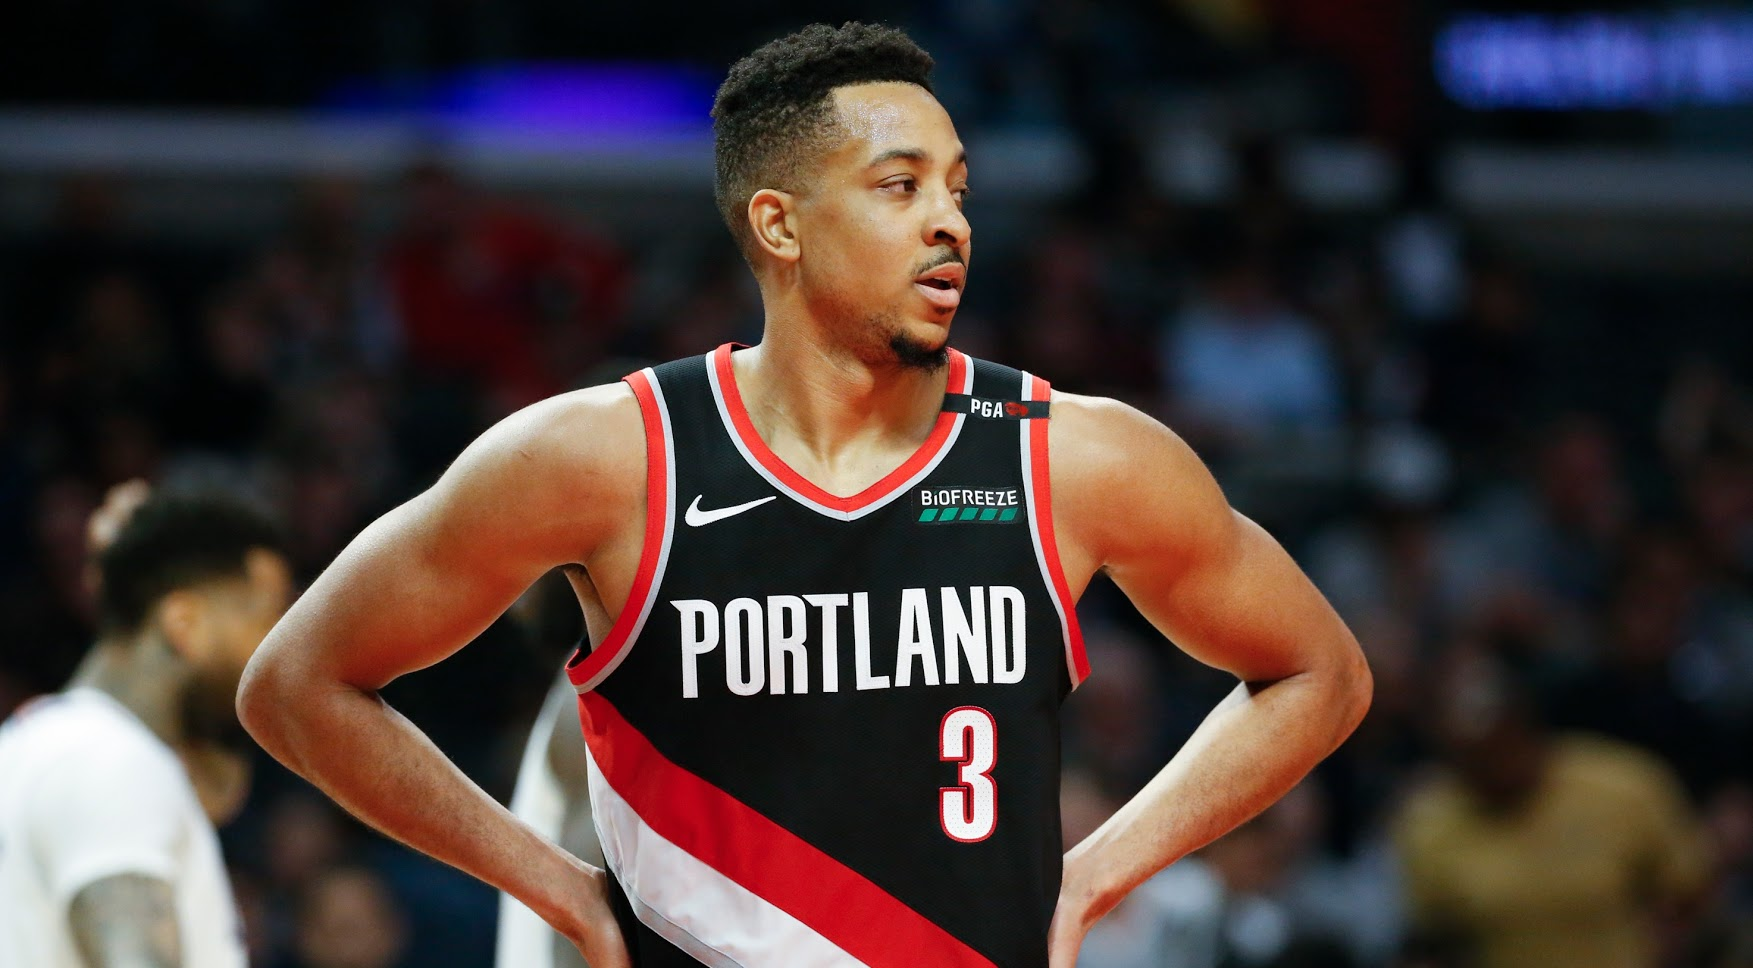 3-on-3 Blazers: How will the Blazers fare without CJ McCollum?